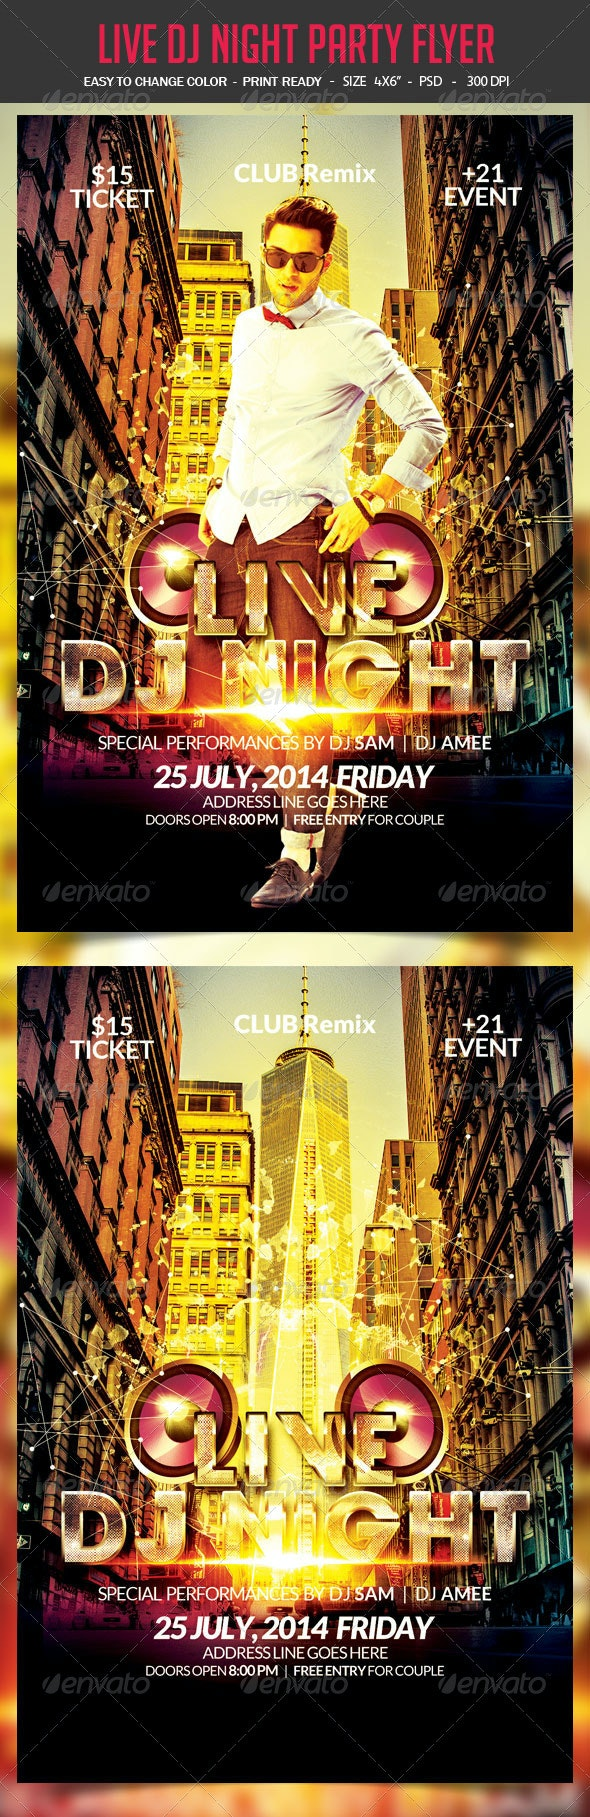 Live Dj Night Party Flyer - Clubs & Parties Events